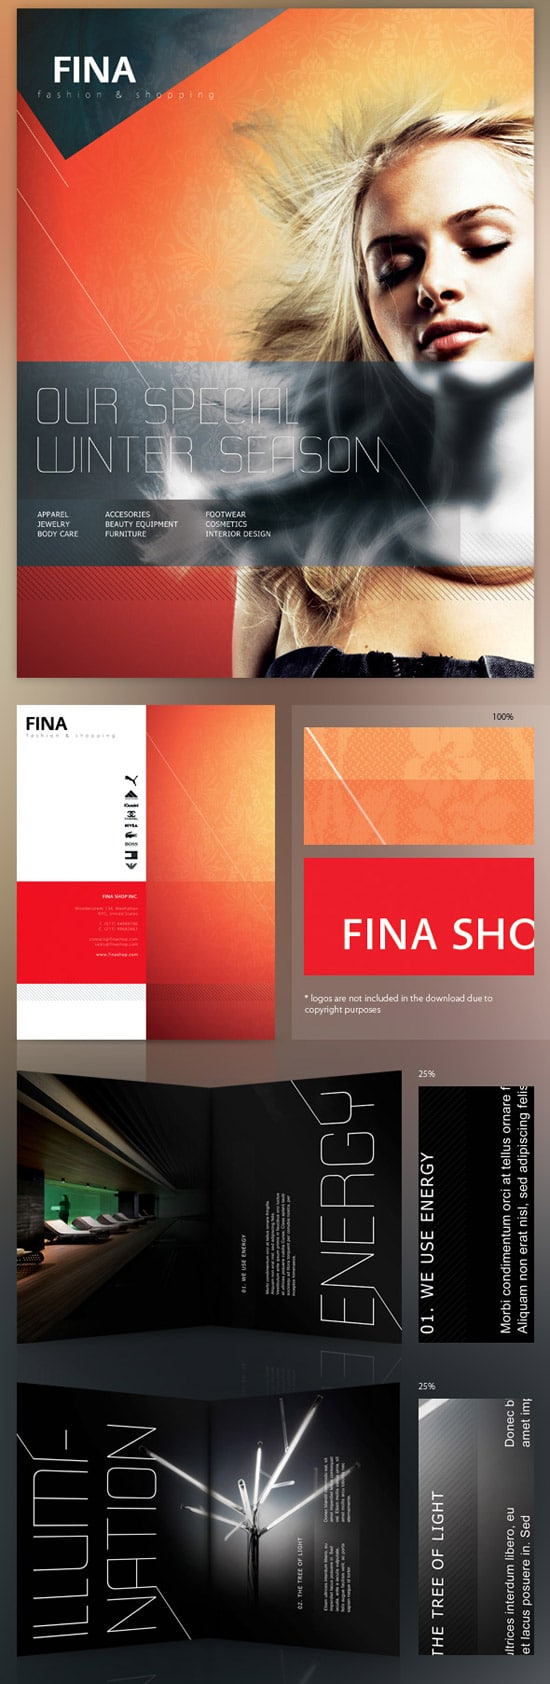 Fina Brochure - Fashion&Shopping 4 Templates